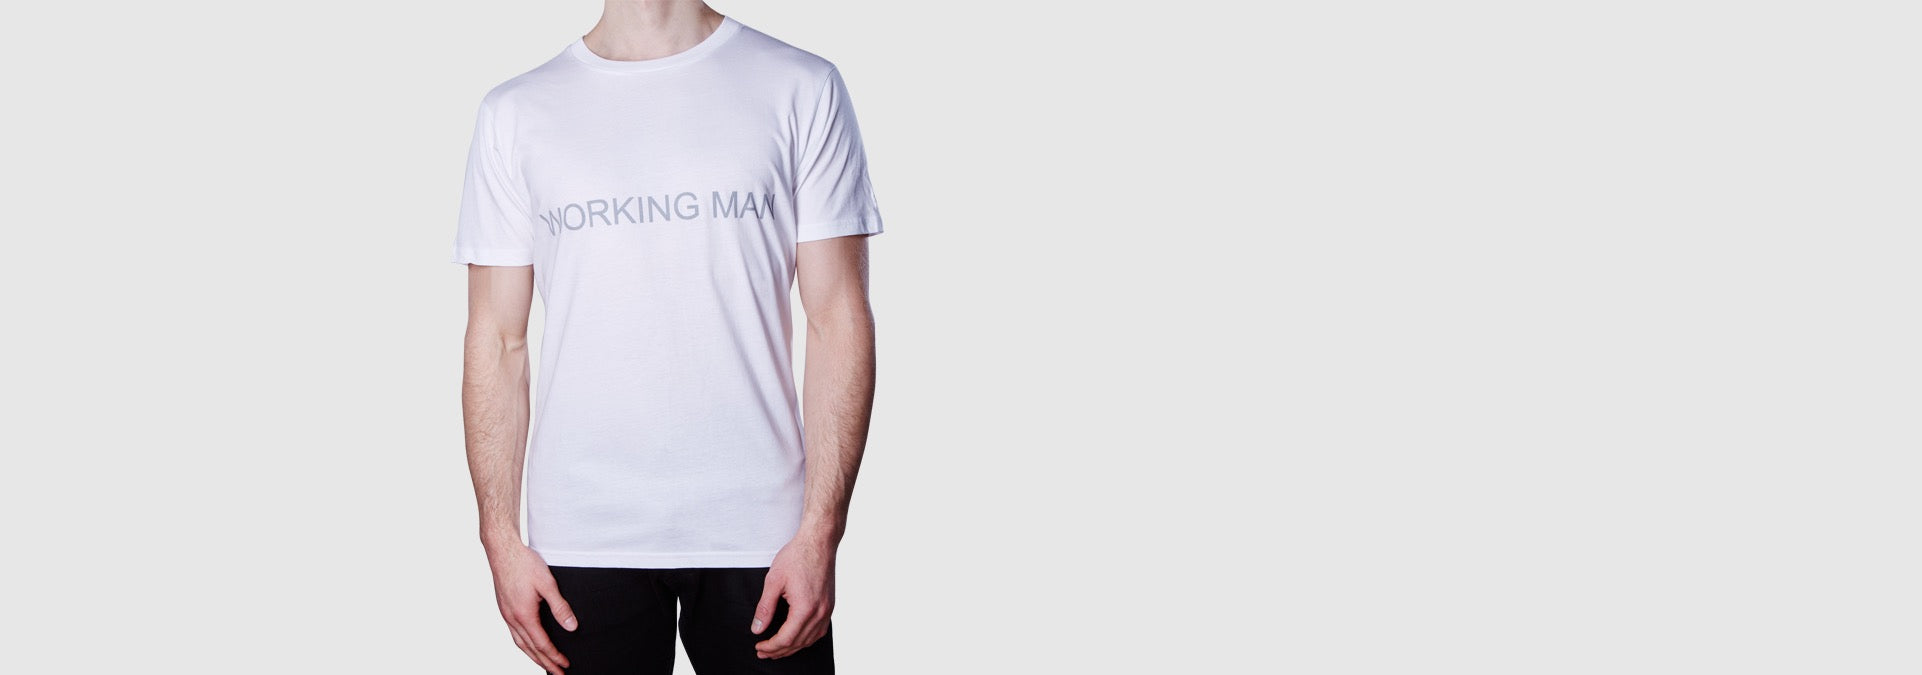 Working Man T-Shirt White